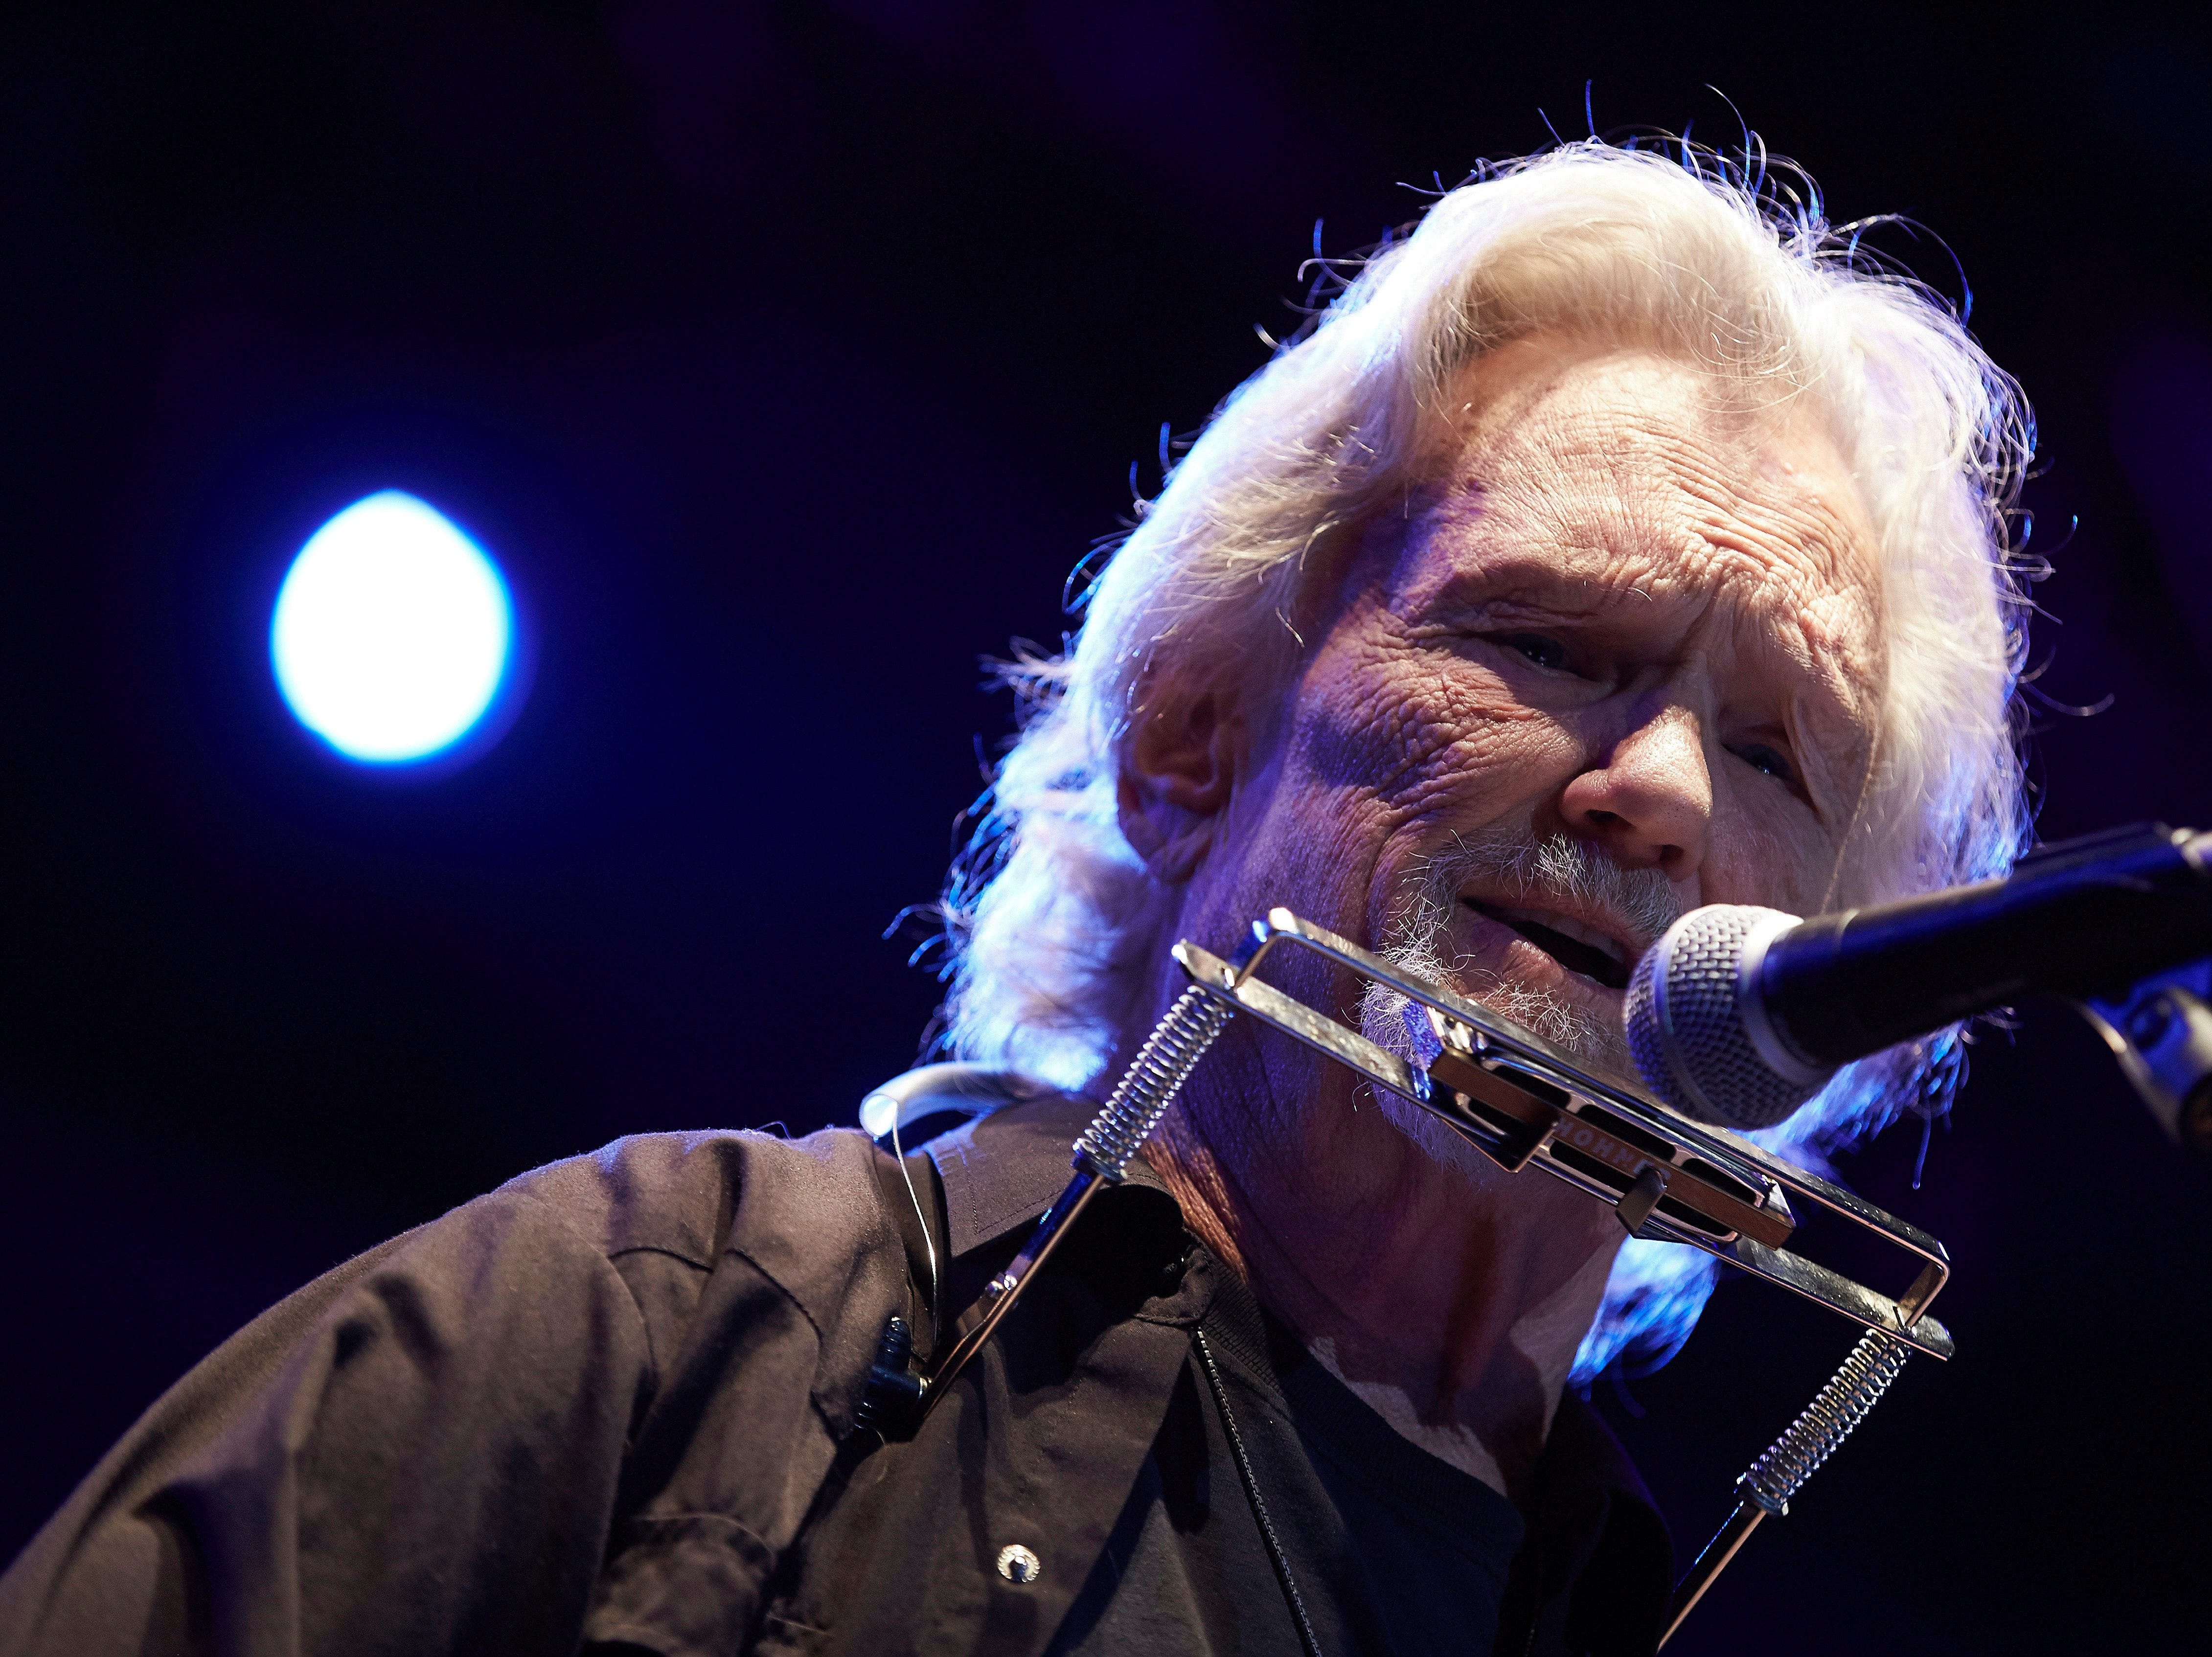 epa06051840 US musician, actor and singer Kris Kristofferson performs on stage during his Jardins de Pedralbes Festival concert in Barcelona, Spain, 26 June 2017.  EPA/ALEJANDRO GARCIA ORG XMIT: GRA458